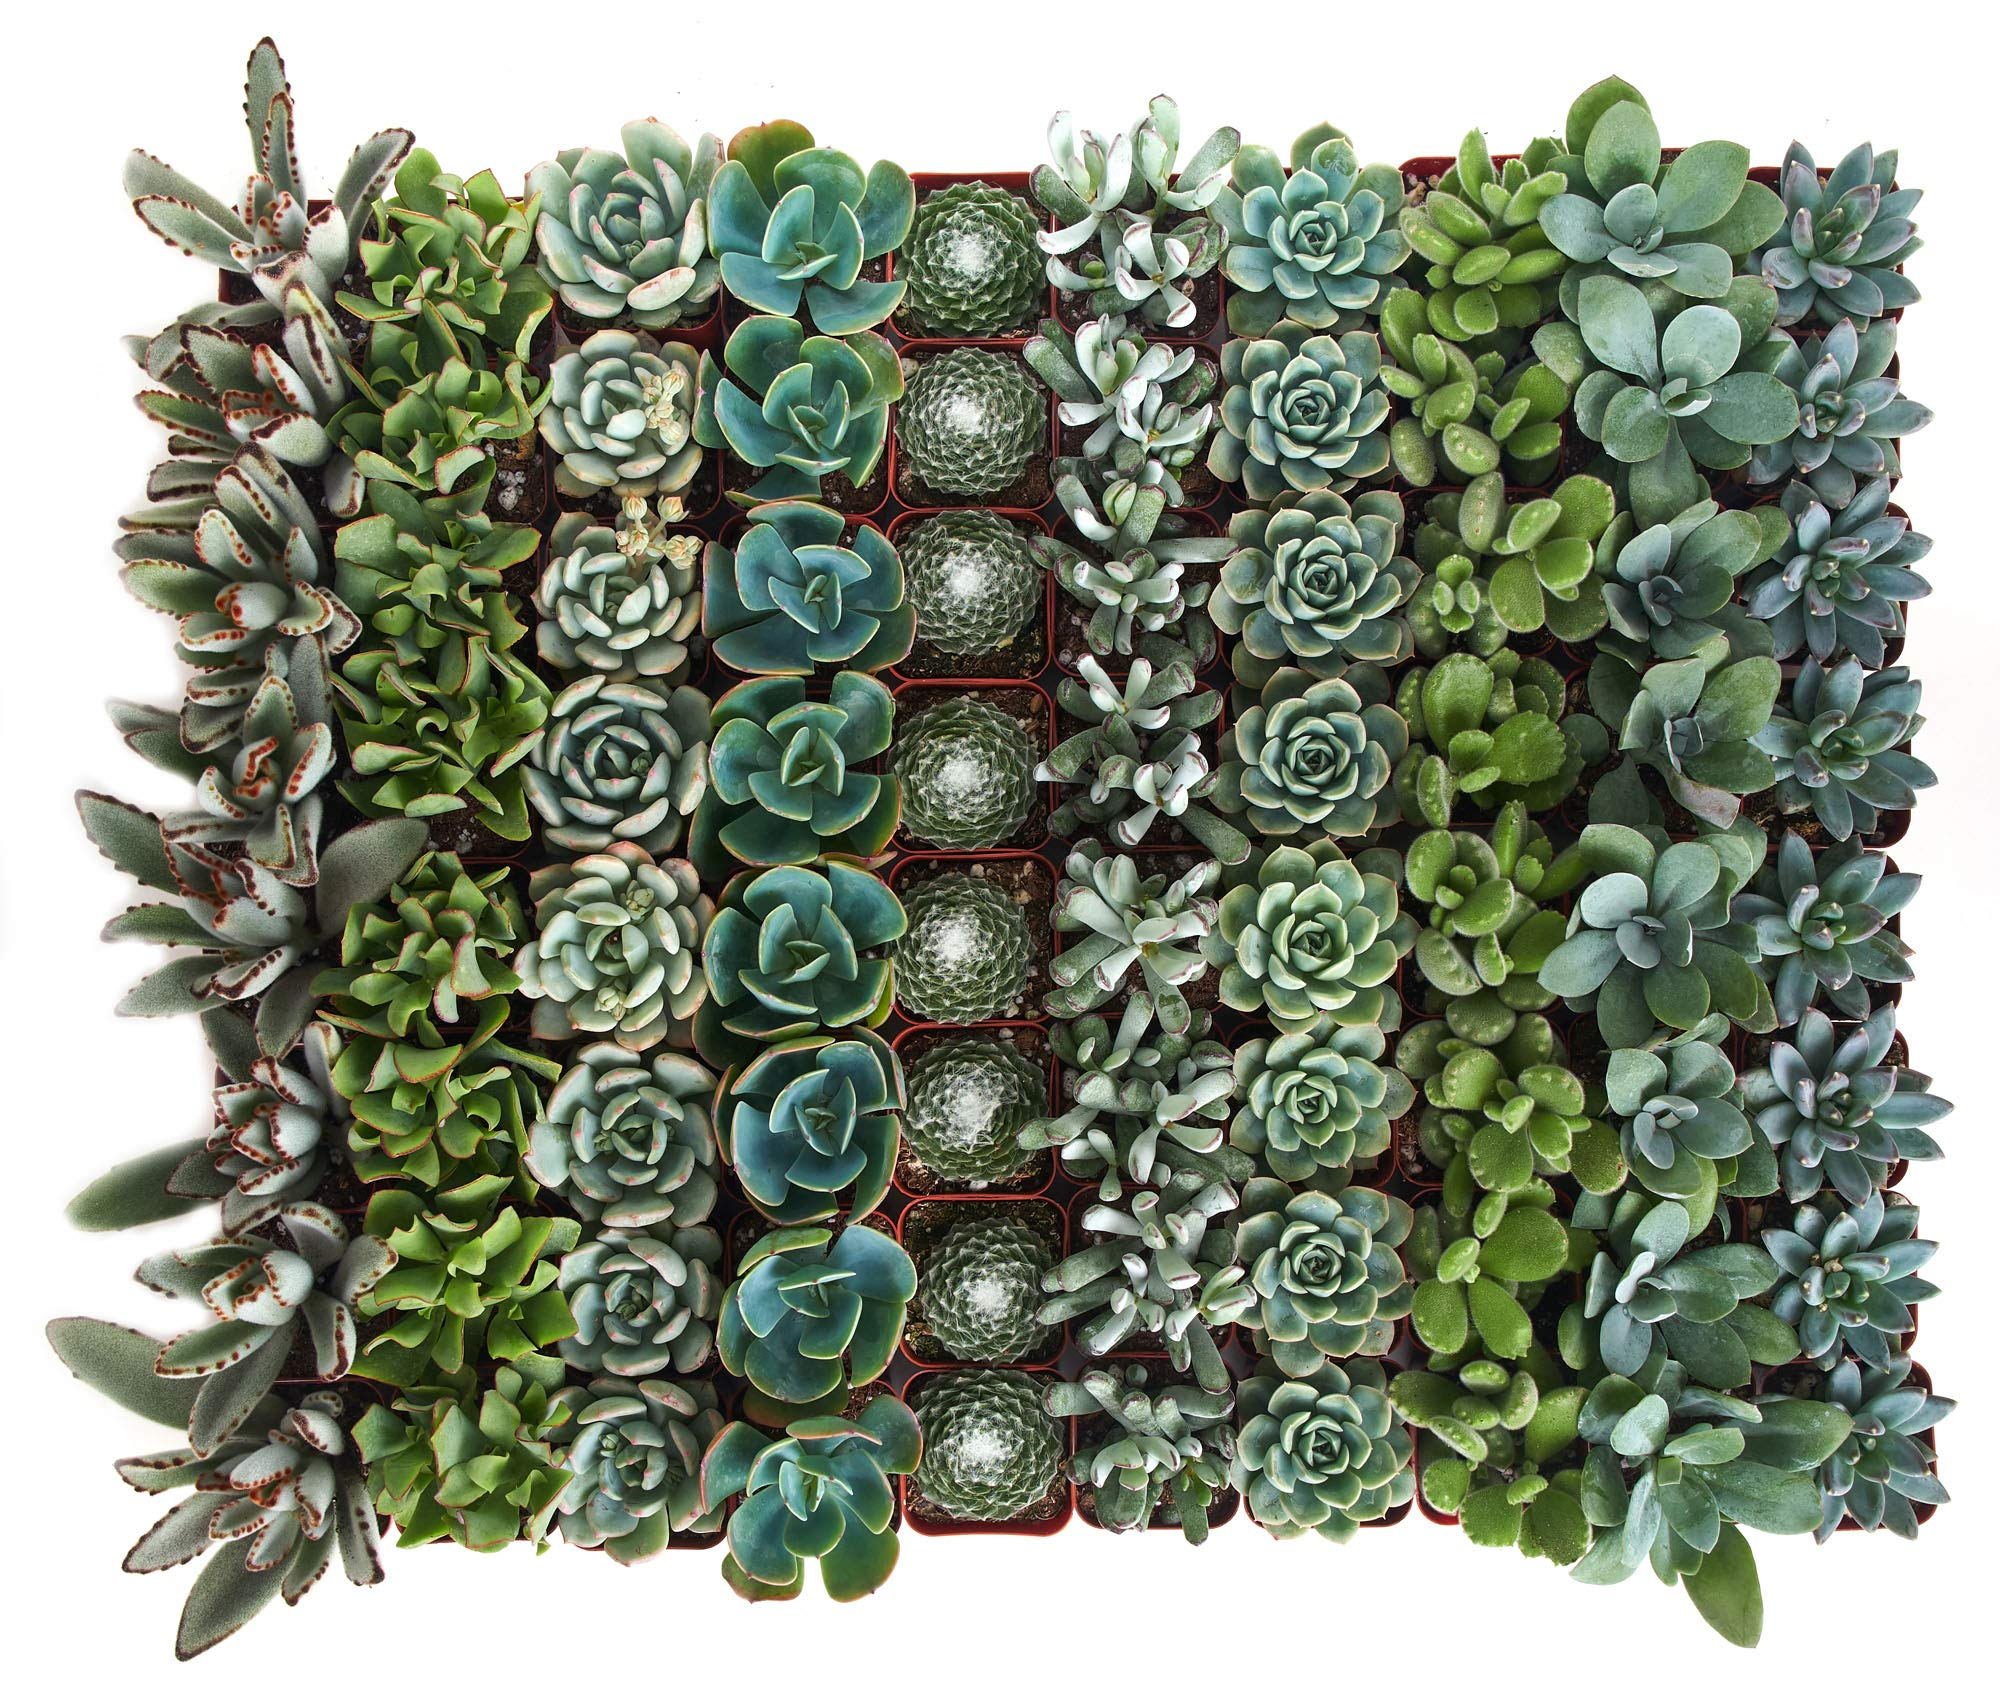 Shop Succulents | Blue/Green Collection of Live Succulent Plants, Hand Selected Variety Pack of Mini Succulents | Collection of 40 in 2'' pots